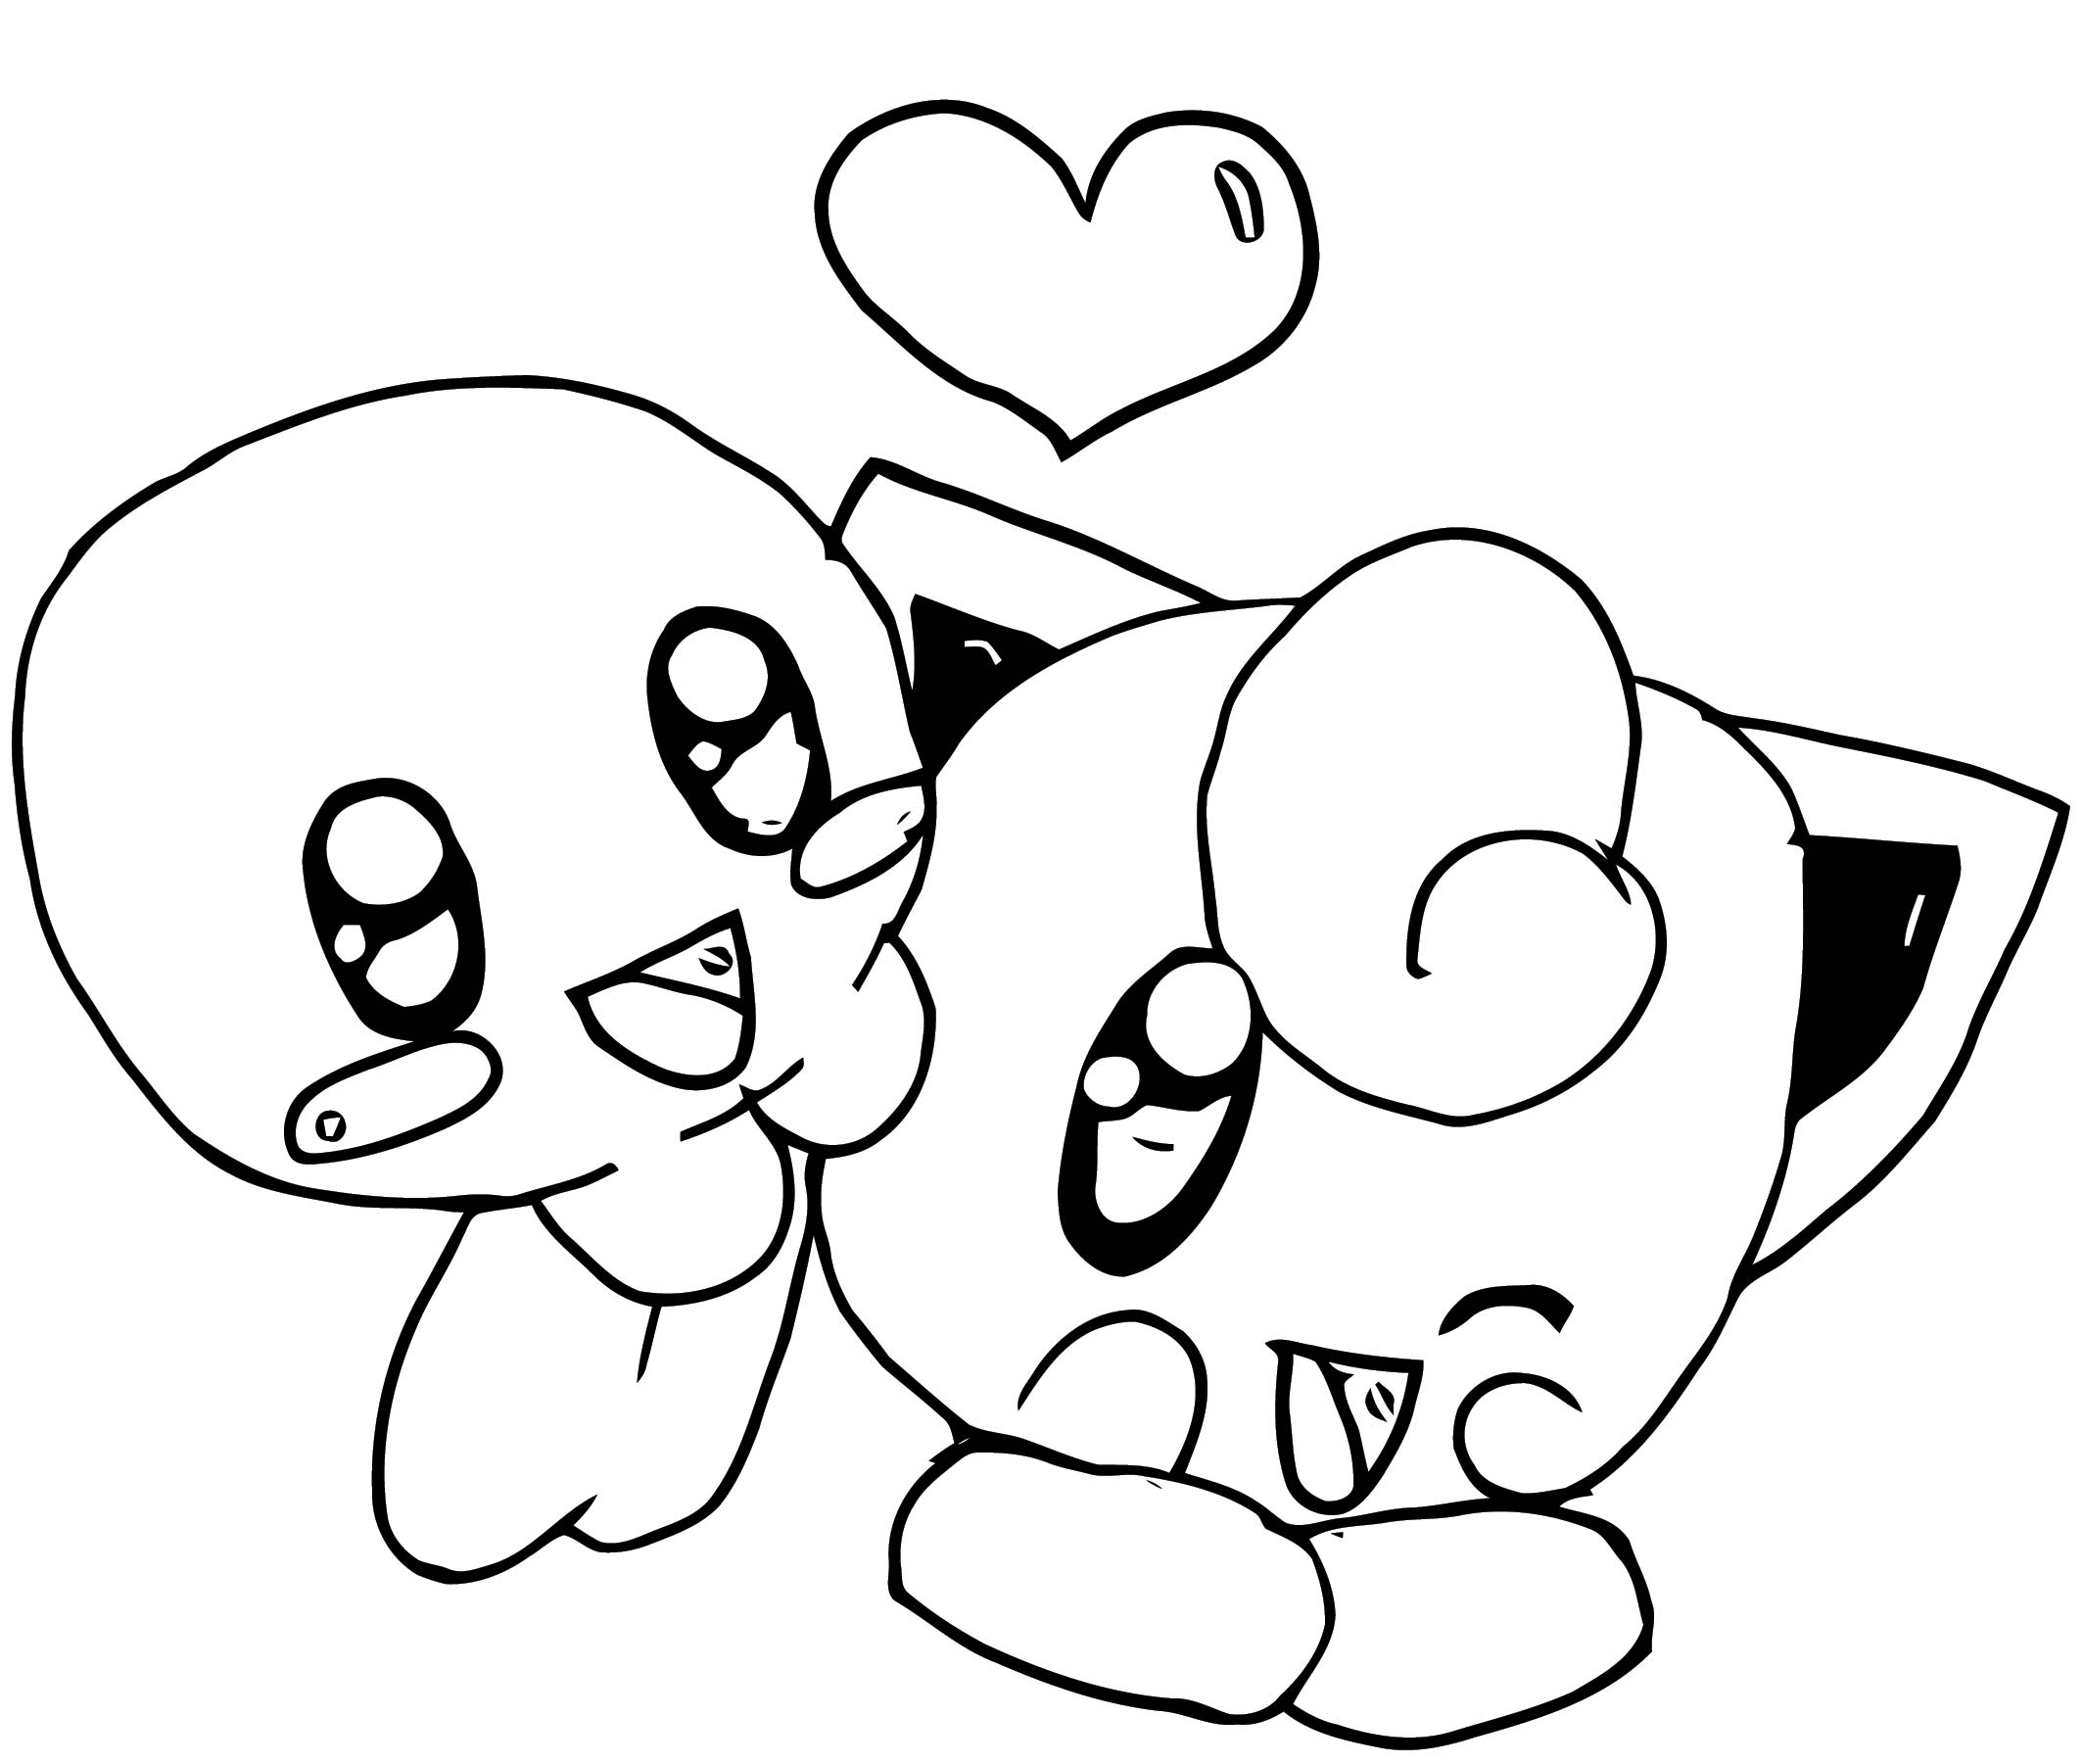 Kirby And Jigglypuff Coloring Page